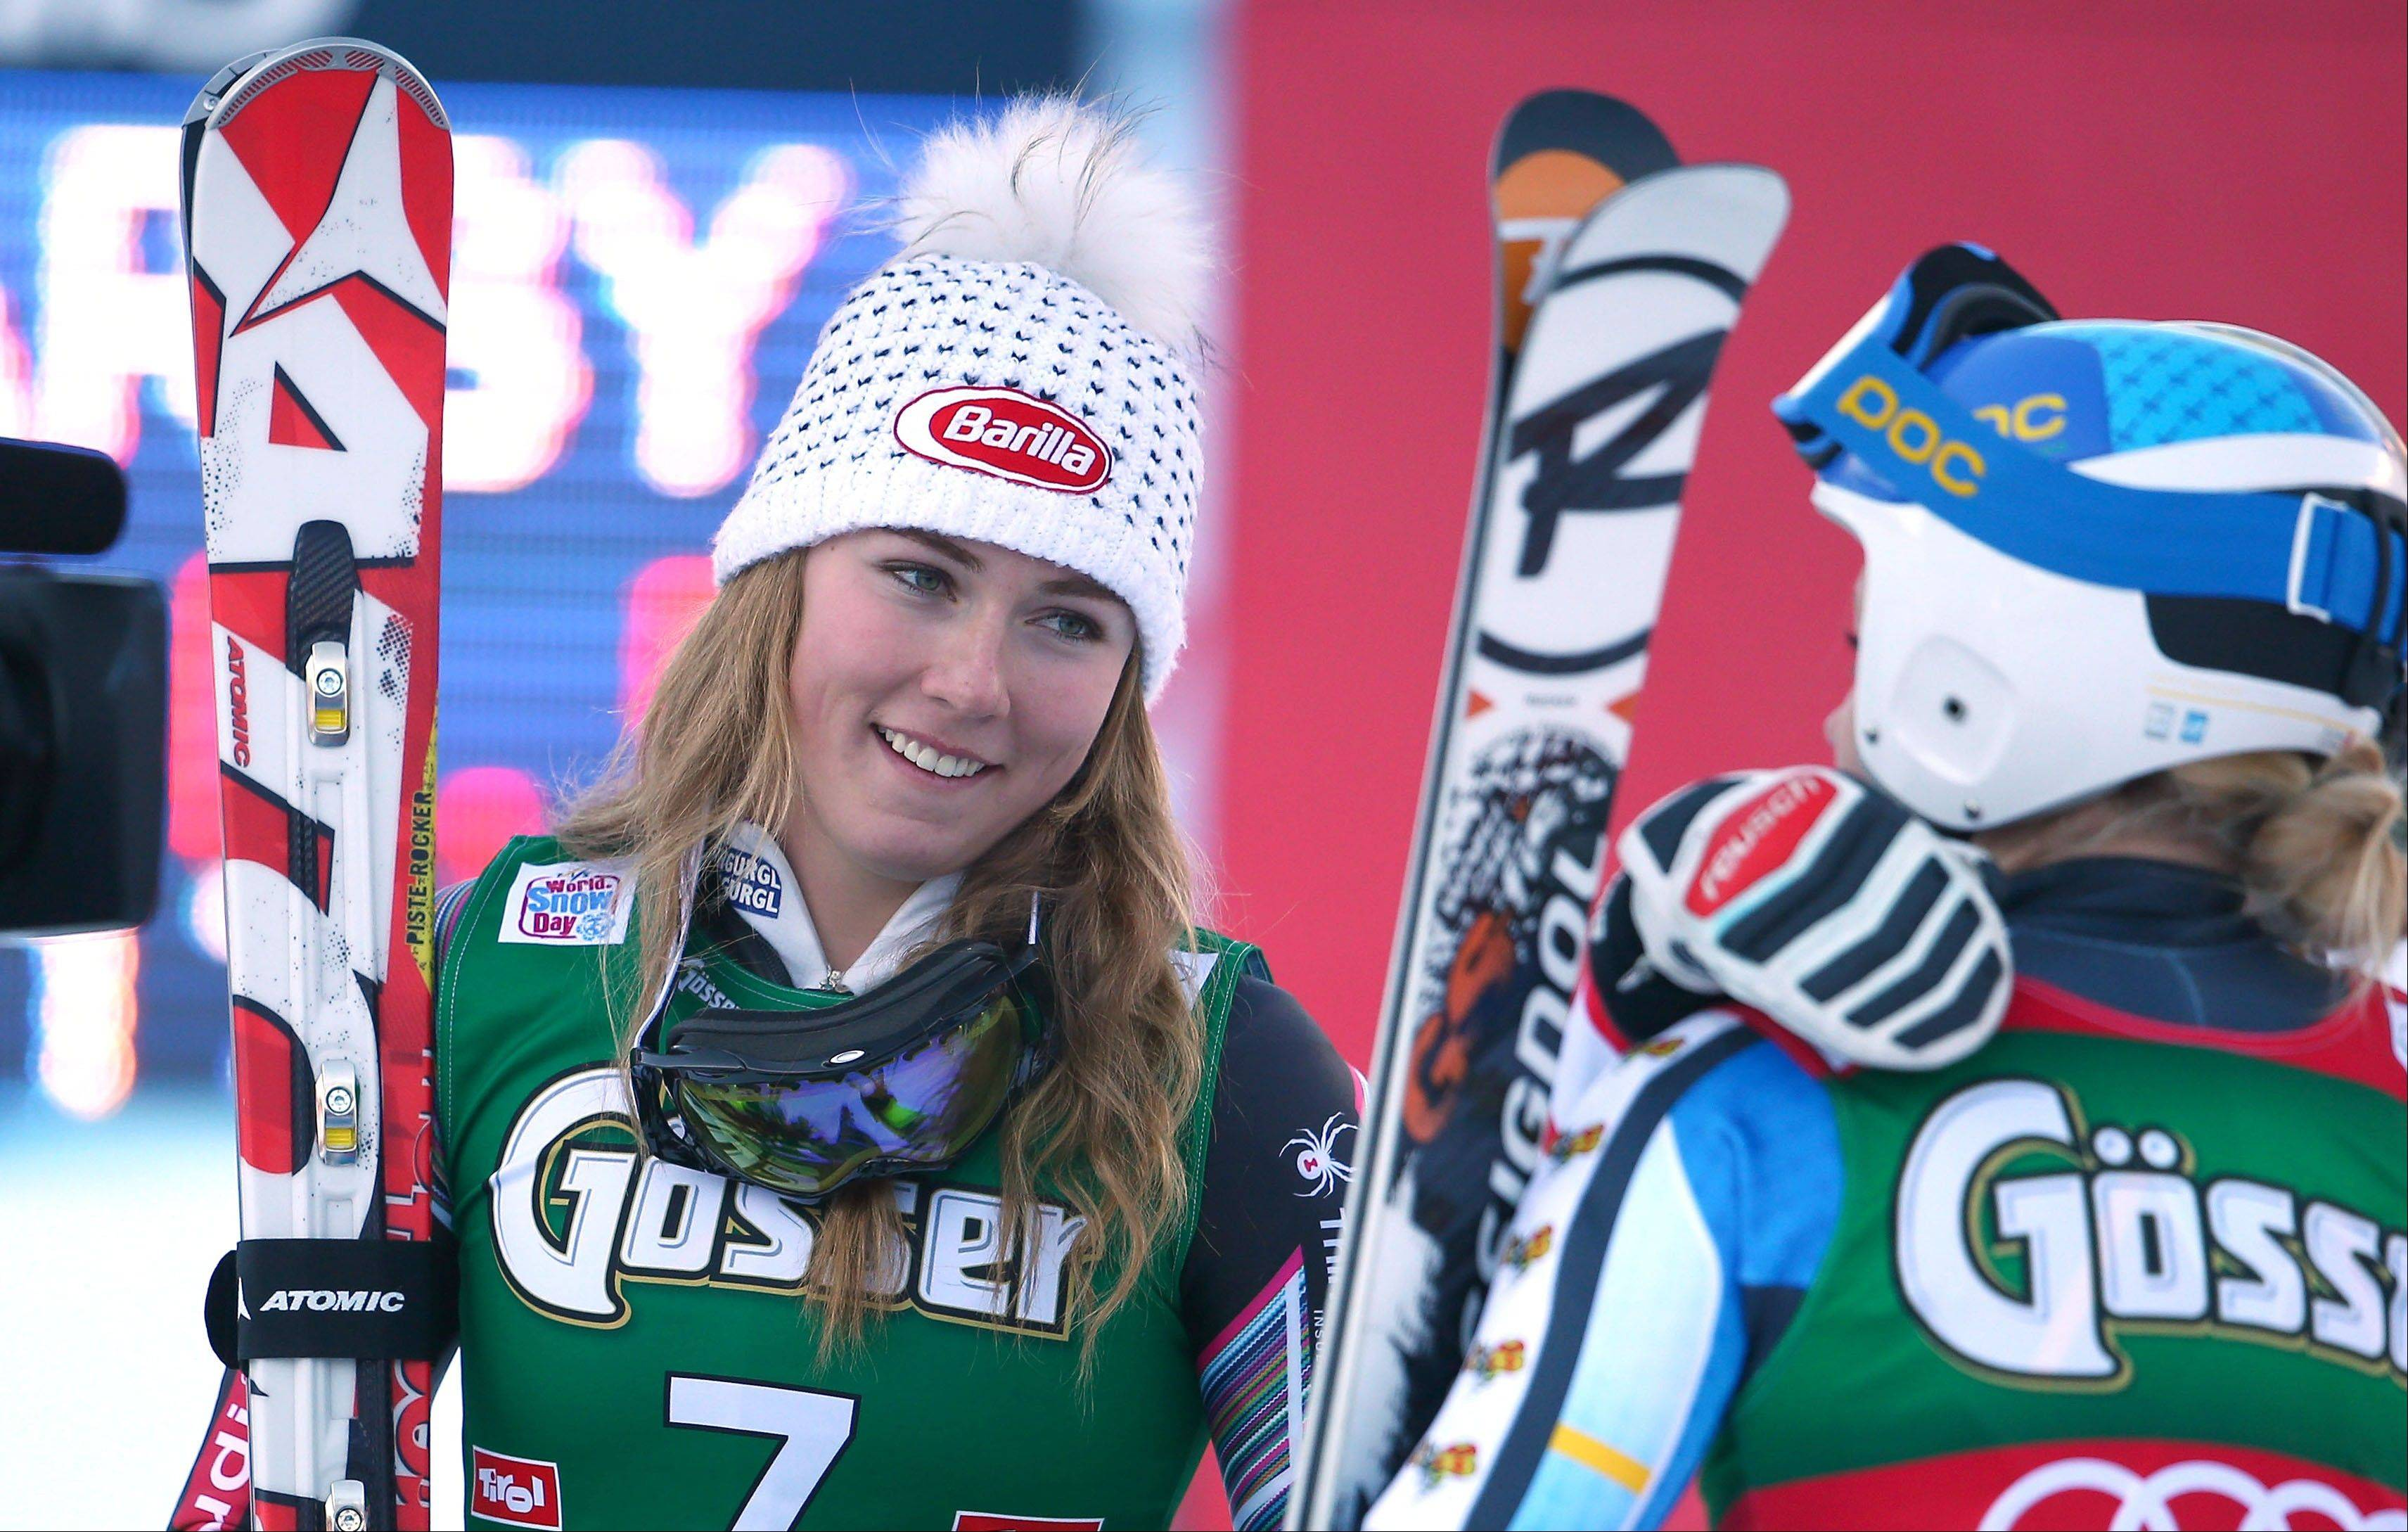 Associated PressMikaela Shiffrin of the United States celebrates her third place in an alpine ski, women's World Cup giant slalom, in Lienz, Austria, Saturday, Dec. 28.